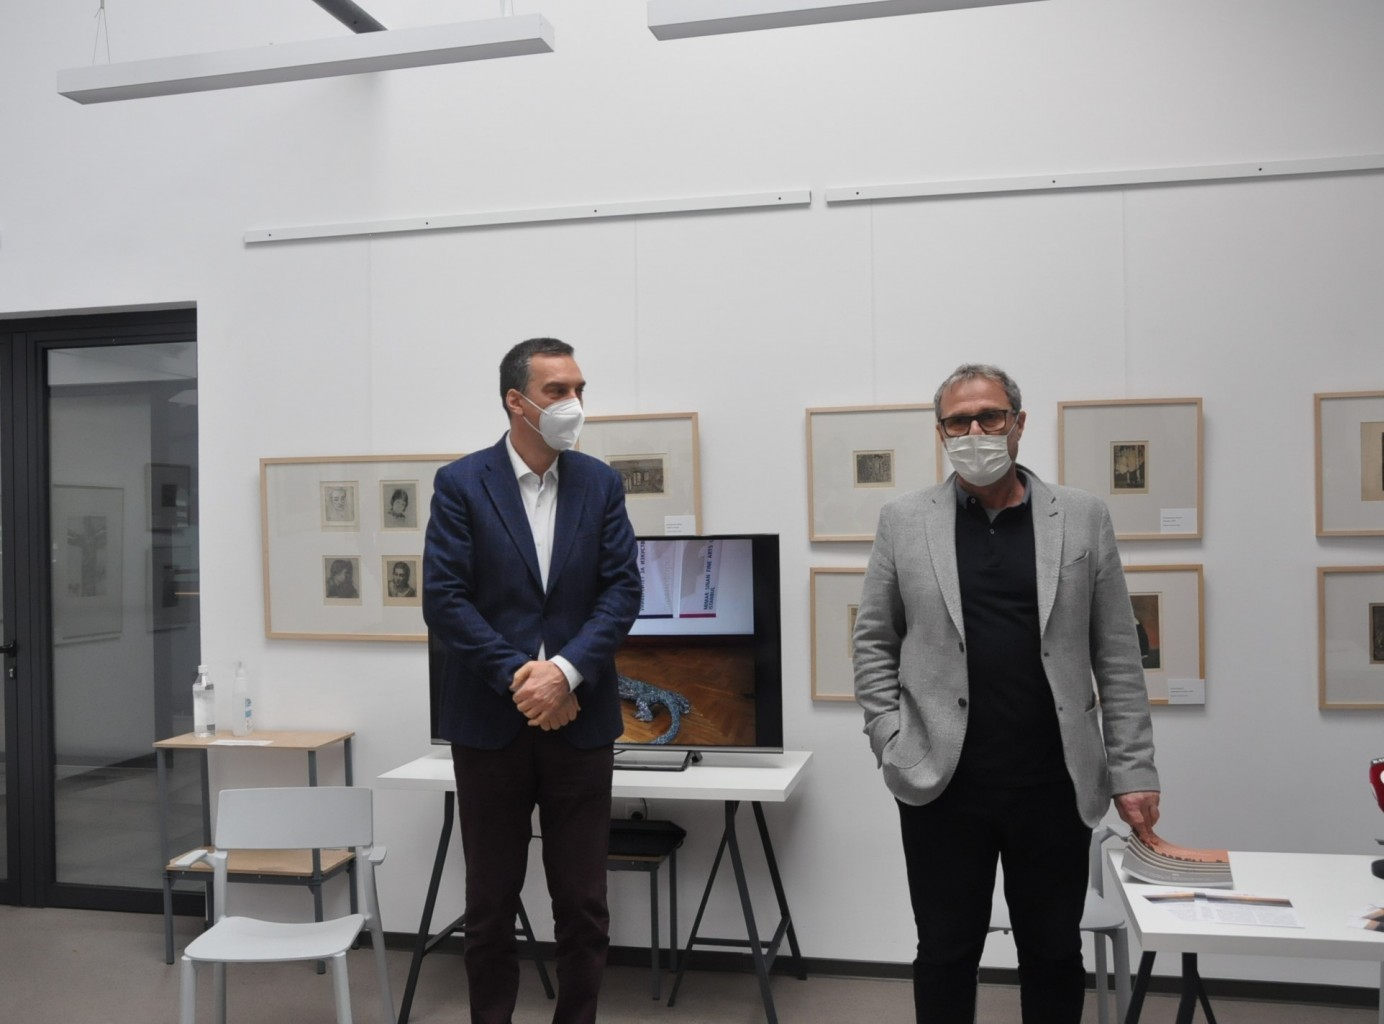 The Branch of the National Art Academy in Burgas is Growing, More Art Spaces in the City